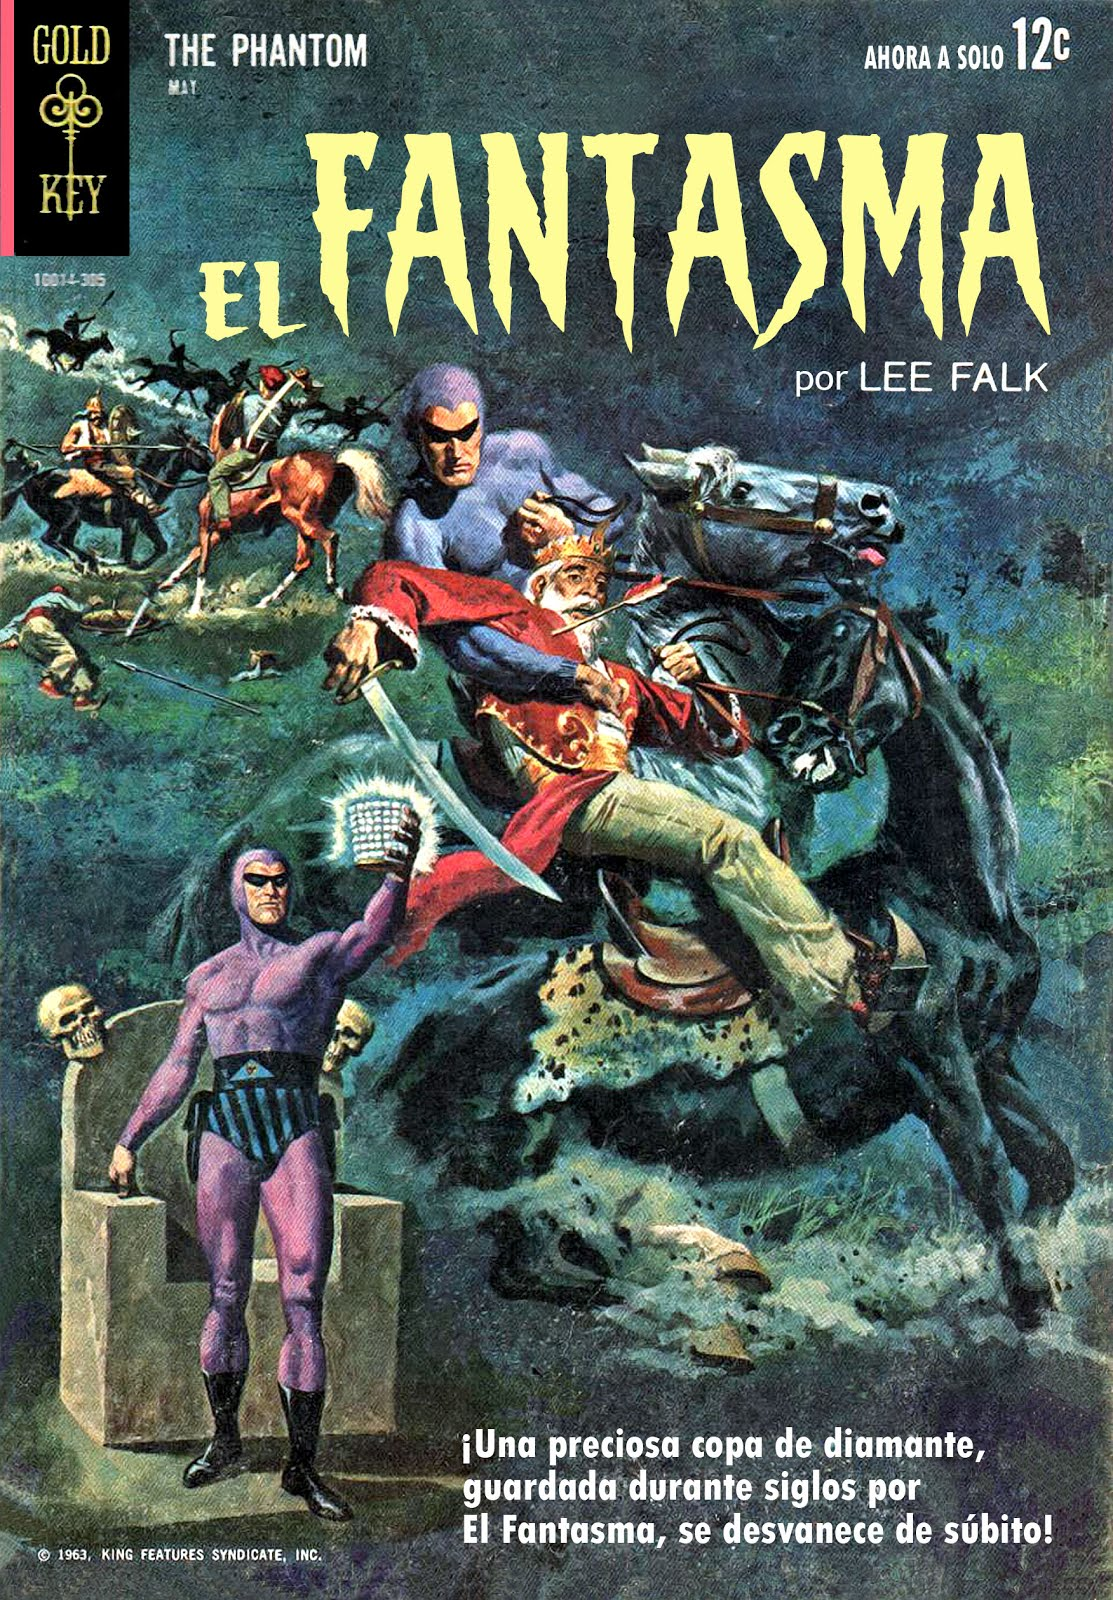 Todos los martes:The Phantom (1962 Gold Key / King / Charlton) [El Fantasma]